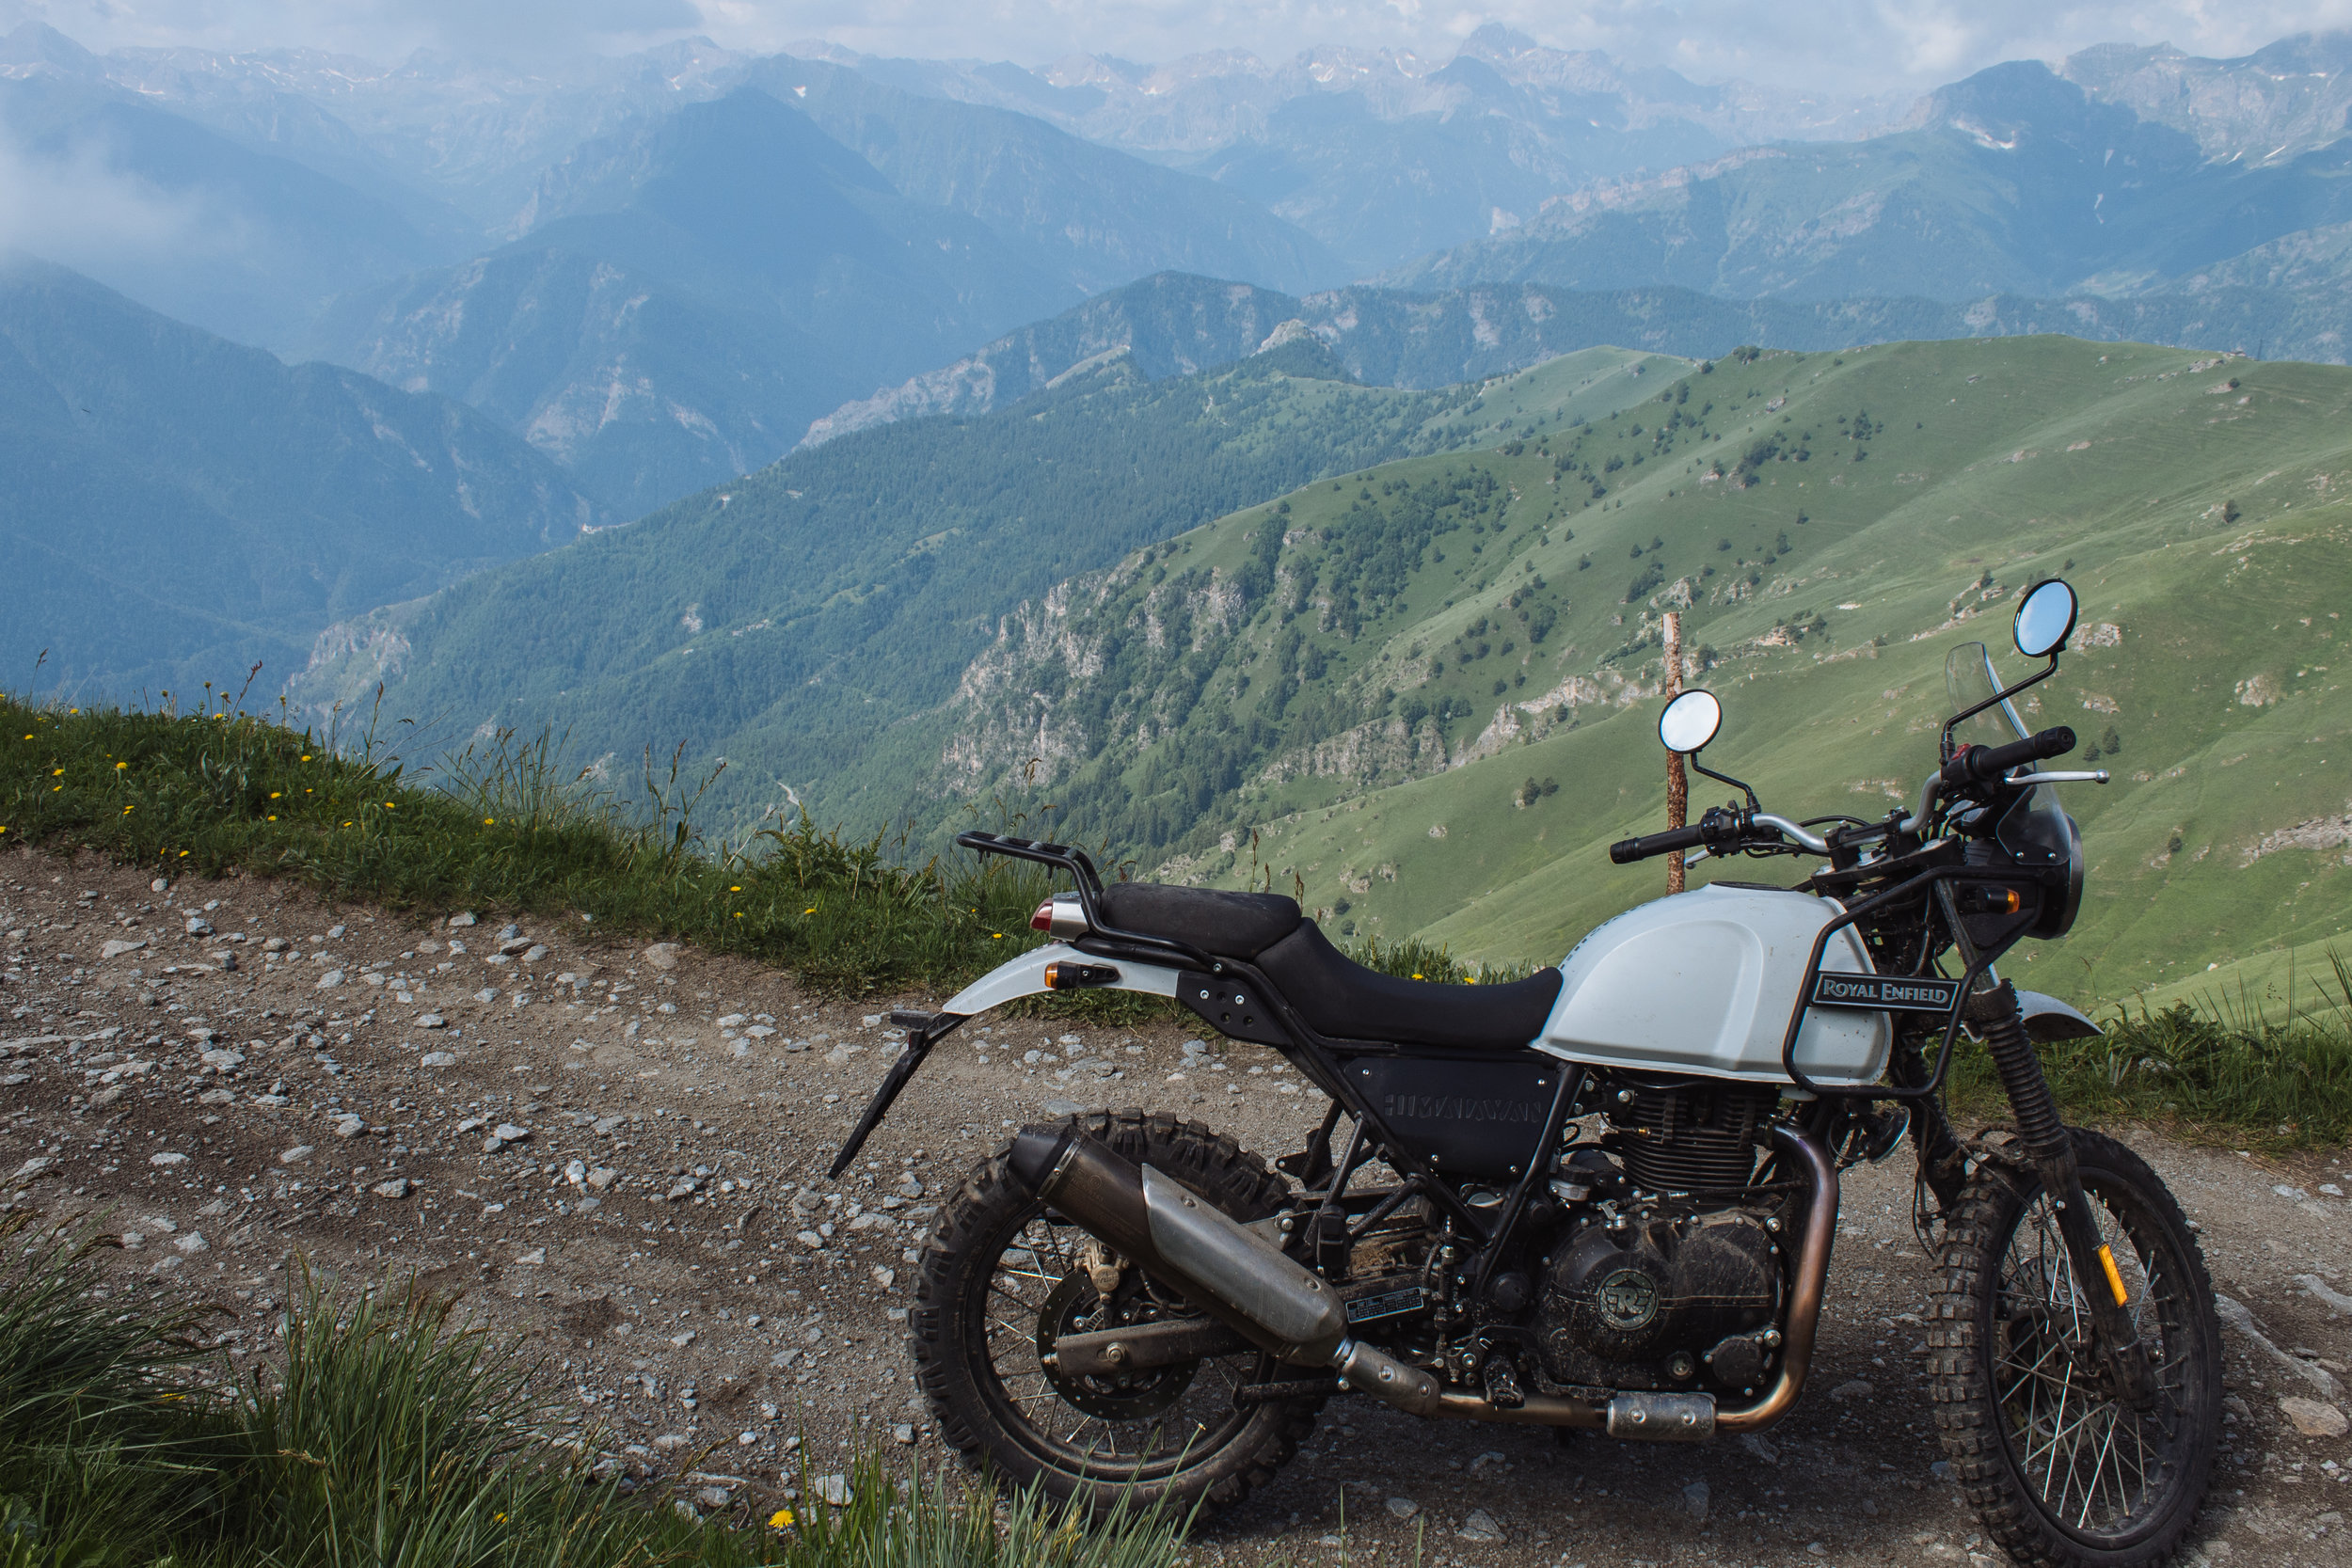 Panoramic views with the Himalayan